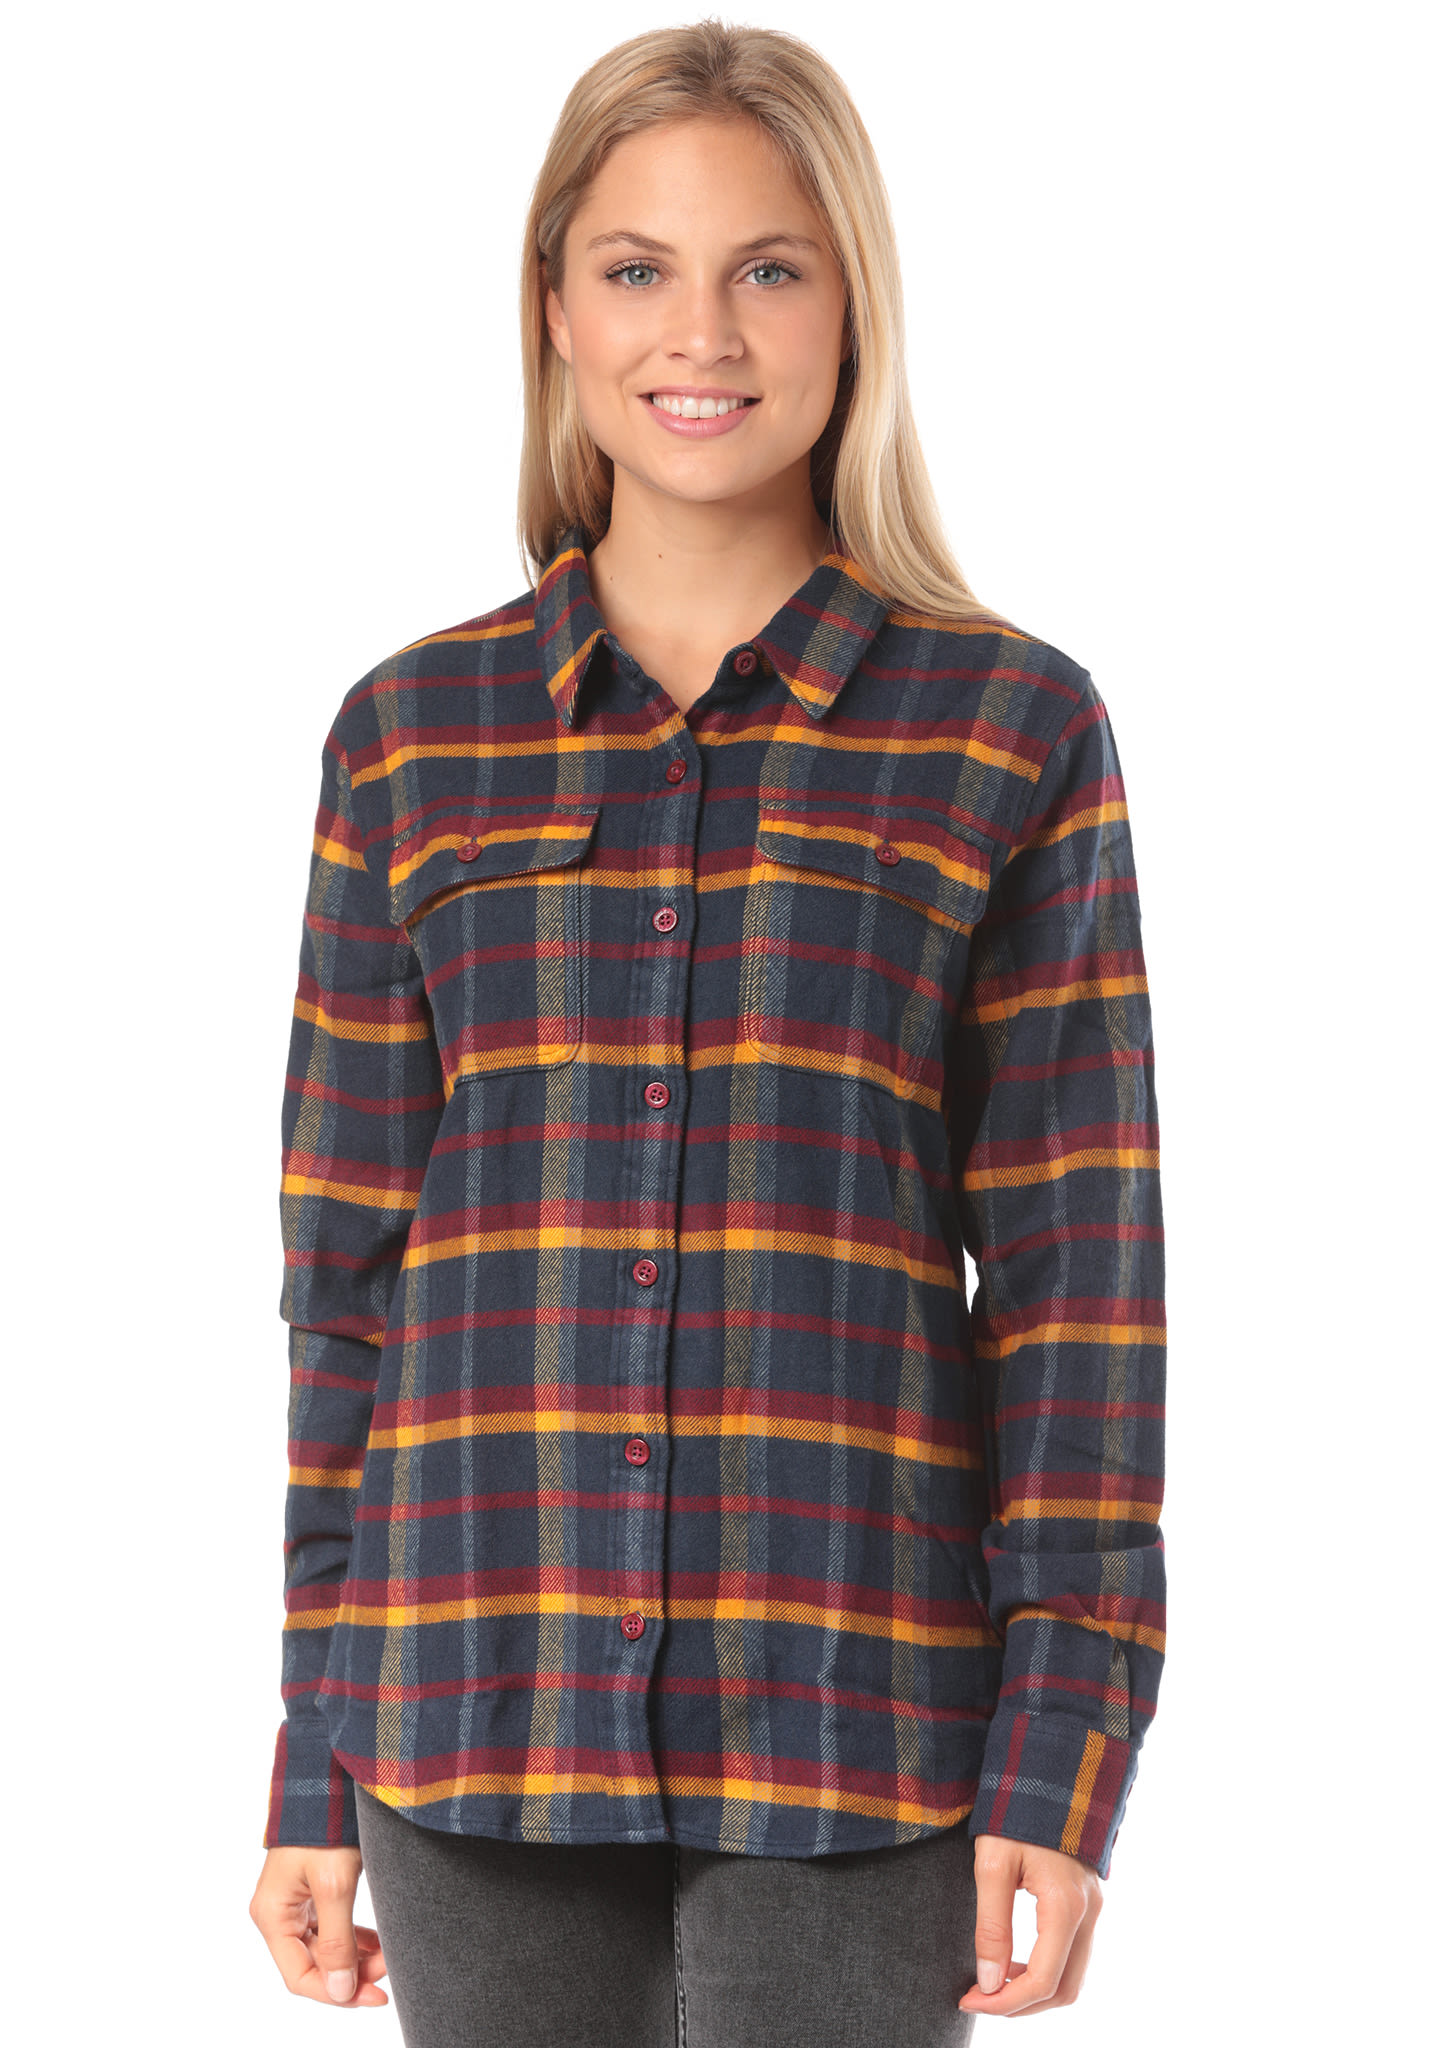 fa537a20 PATAGONIA L/S Fjord Flannel - Shirt for Women - Plaid - Planet Sports